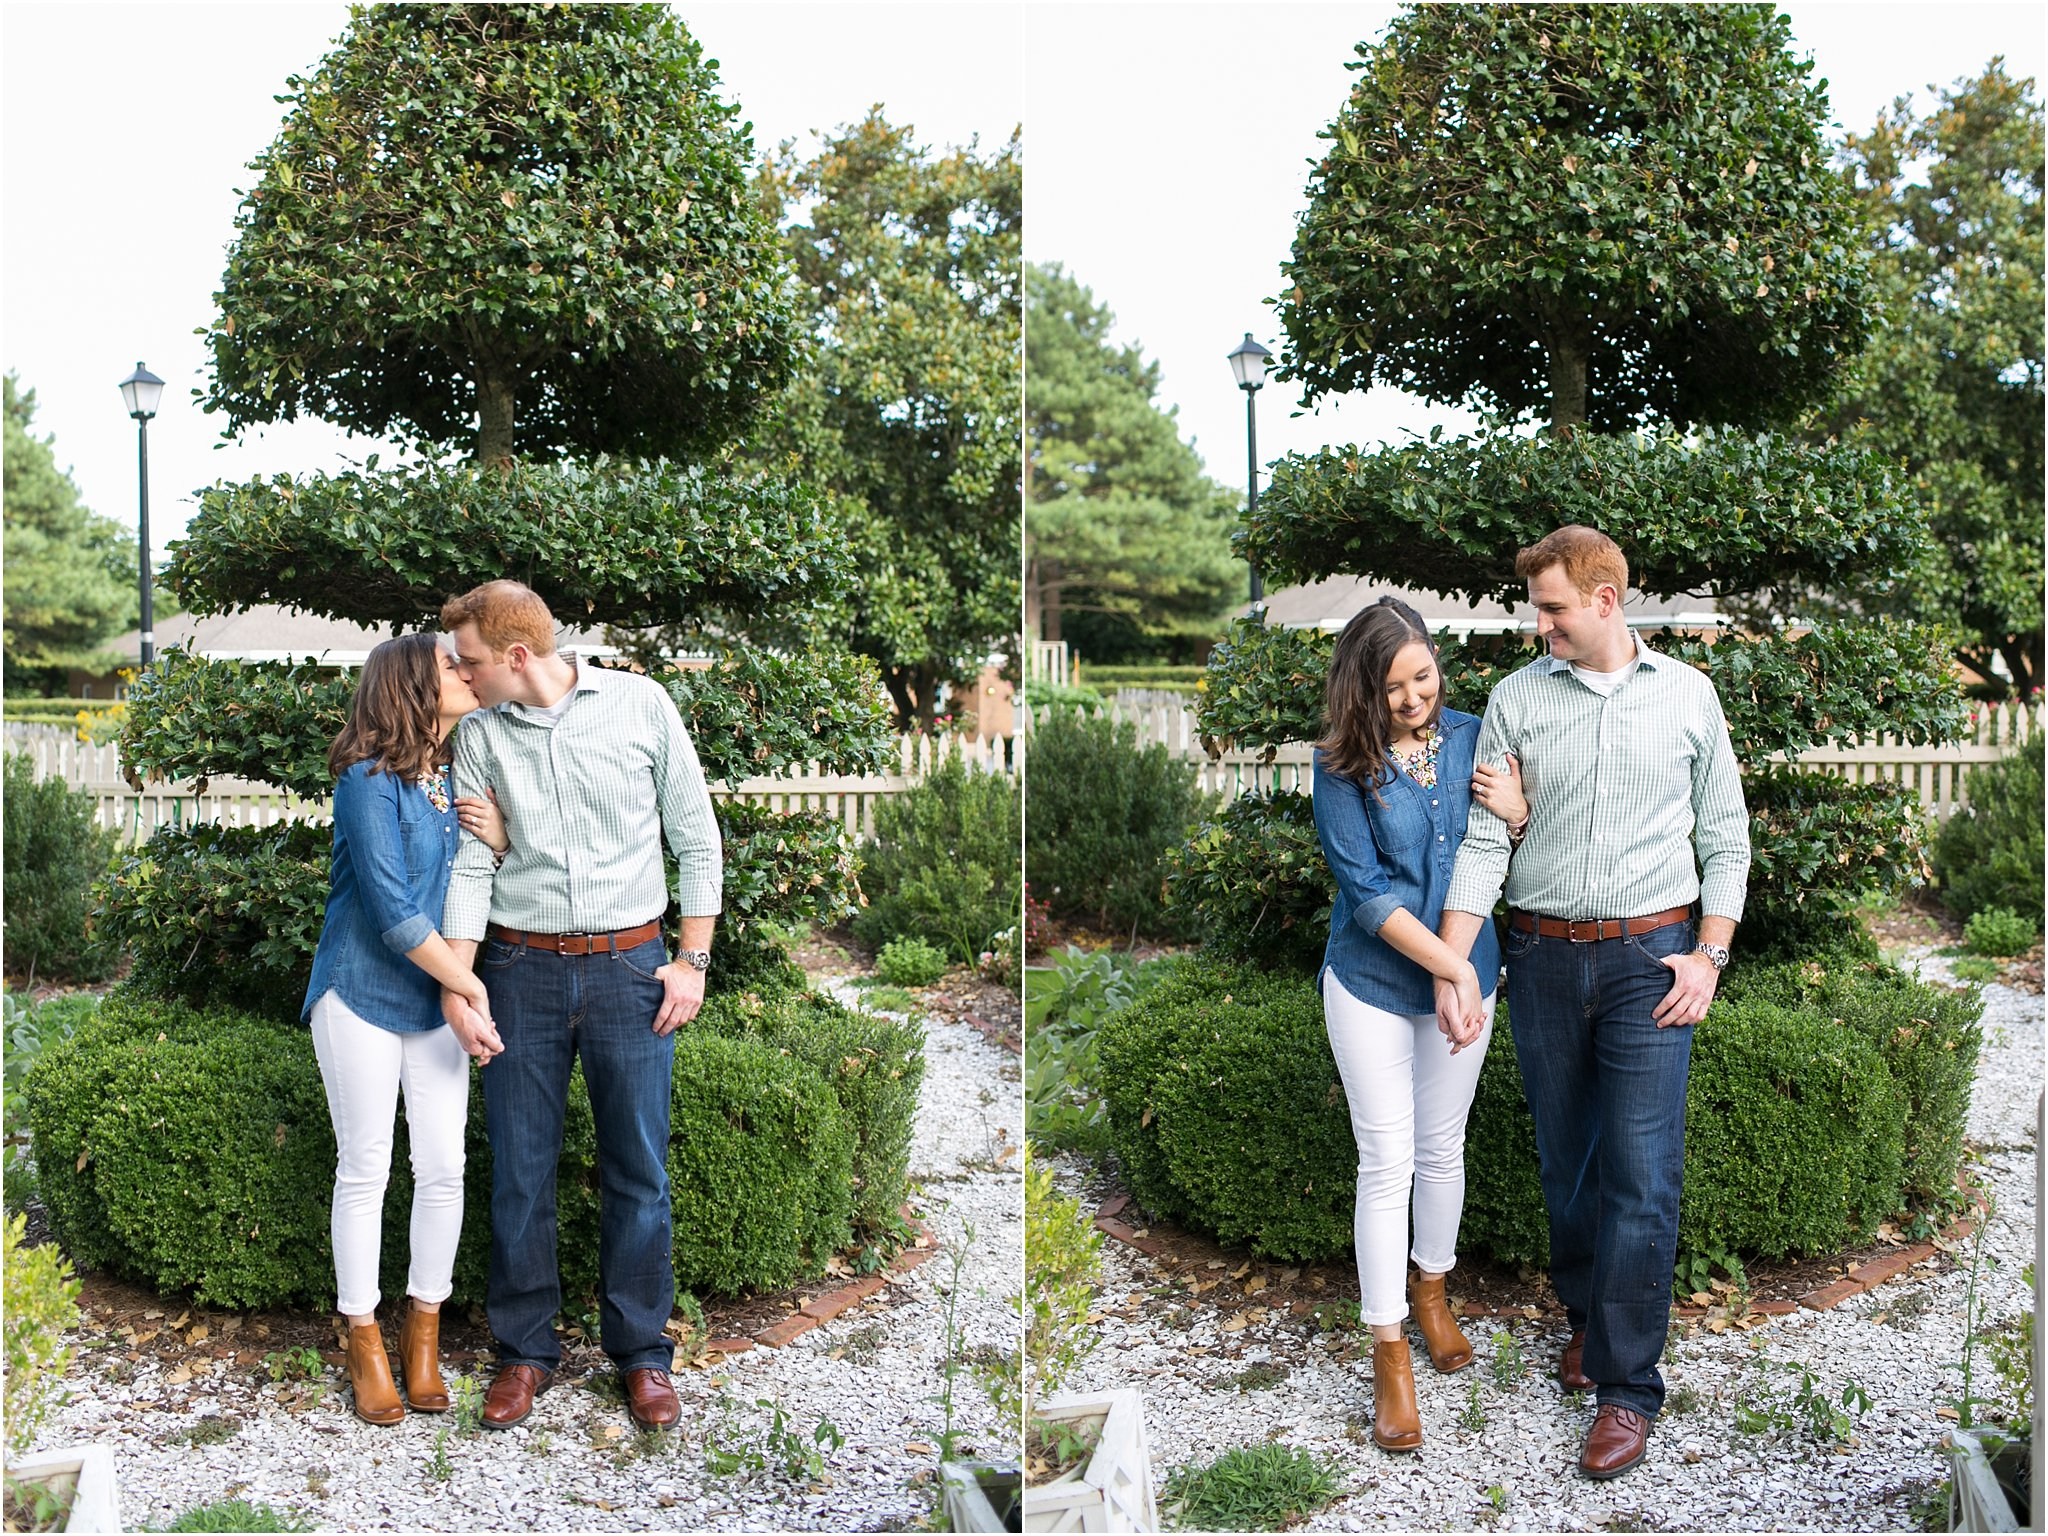 jessica_ryan_photography_virginia_virginia_beach_francis_land_house__portraits_bride_and_groom_beloved_historical_home_engagement_portraits_candid_authentic_engagements_2710